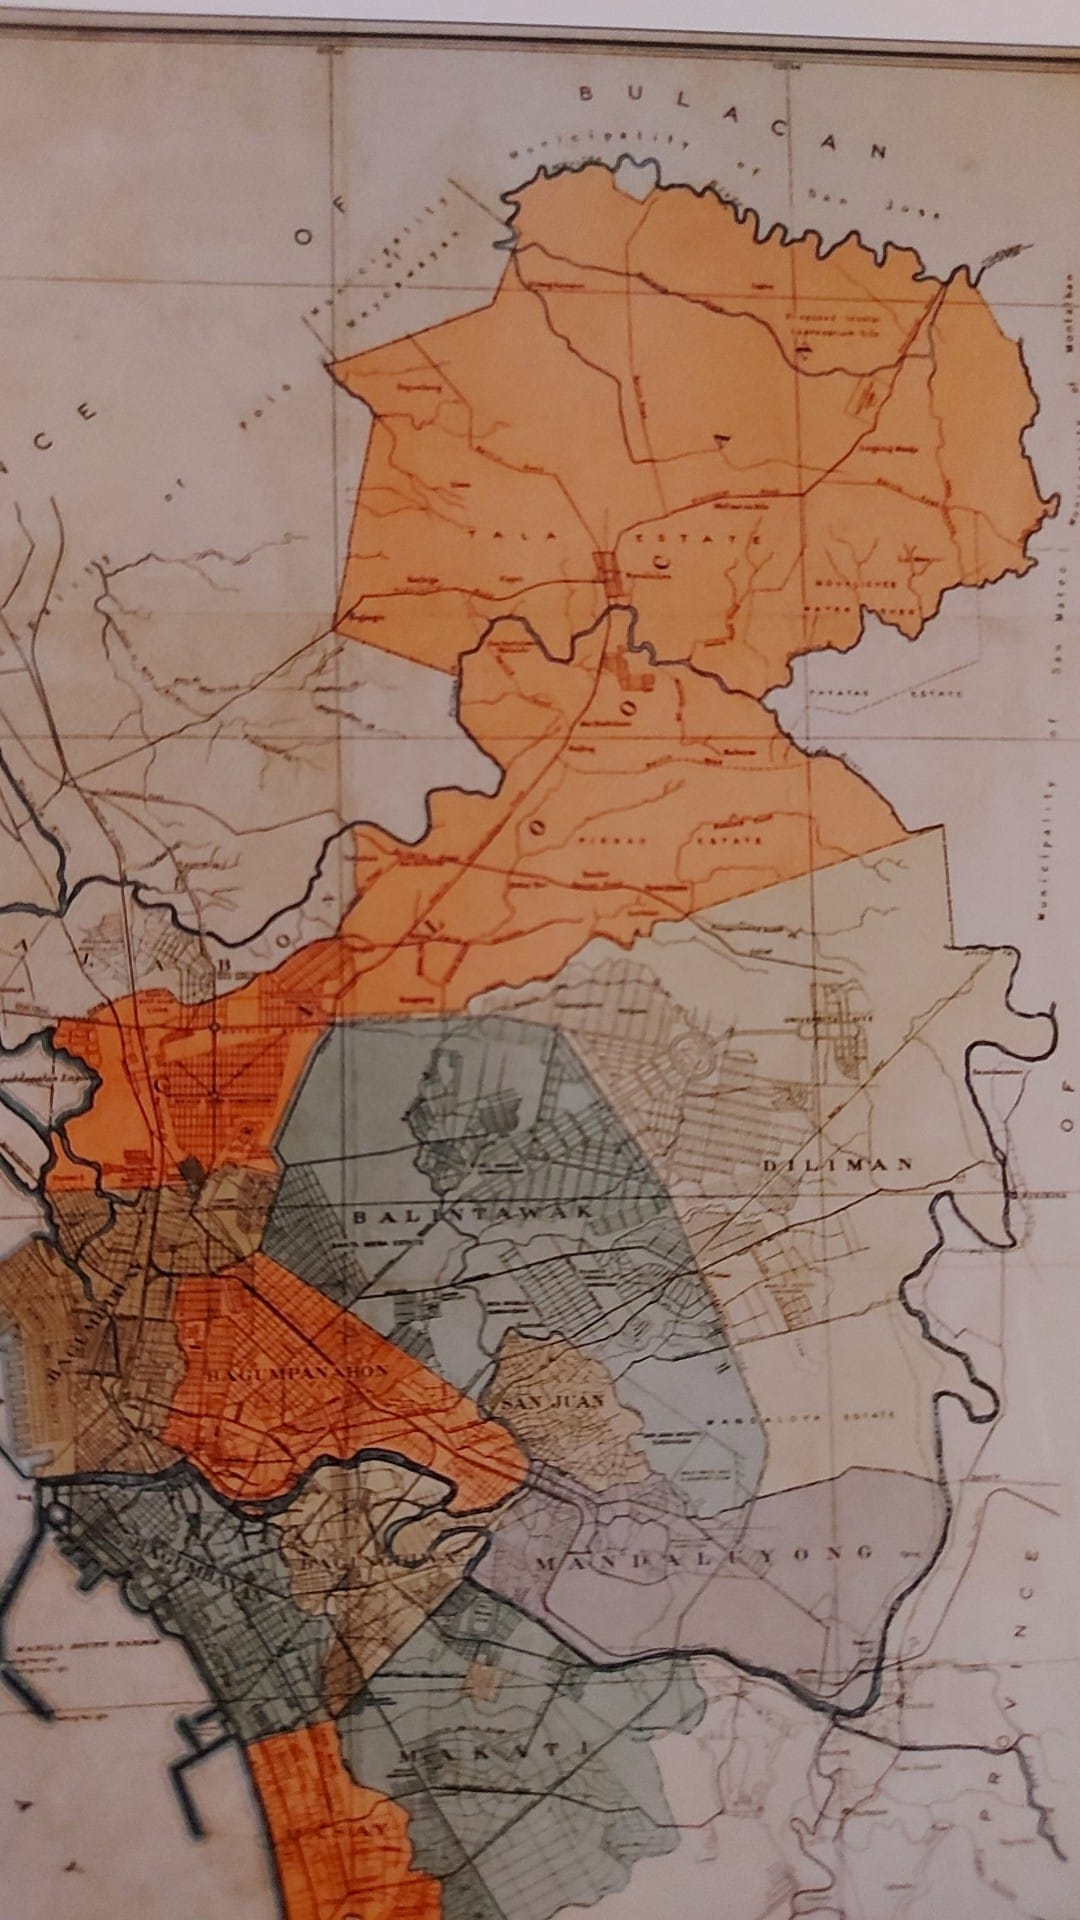 Caloocan was still contiguous in 1939 when QC was created. it was divided into two, when QC was enlarged further in 1948